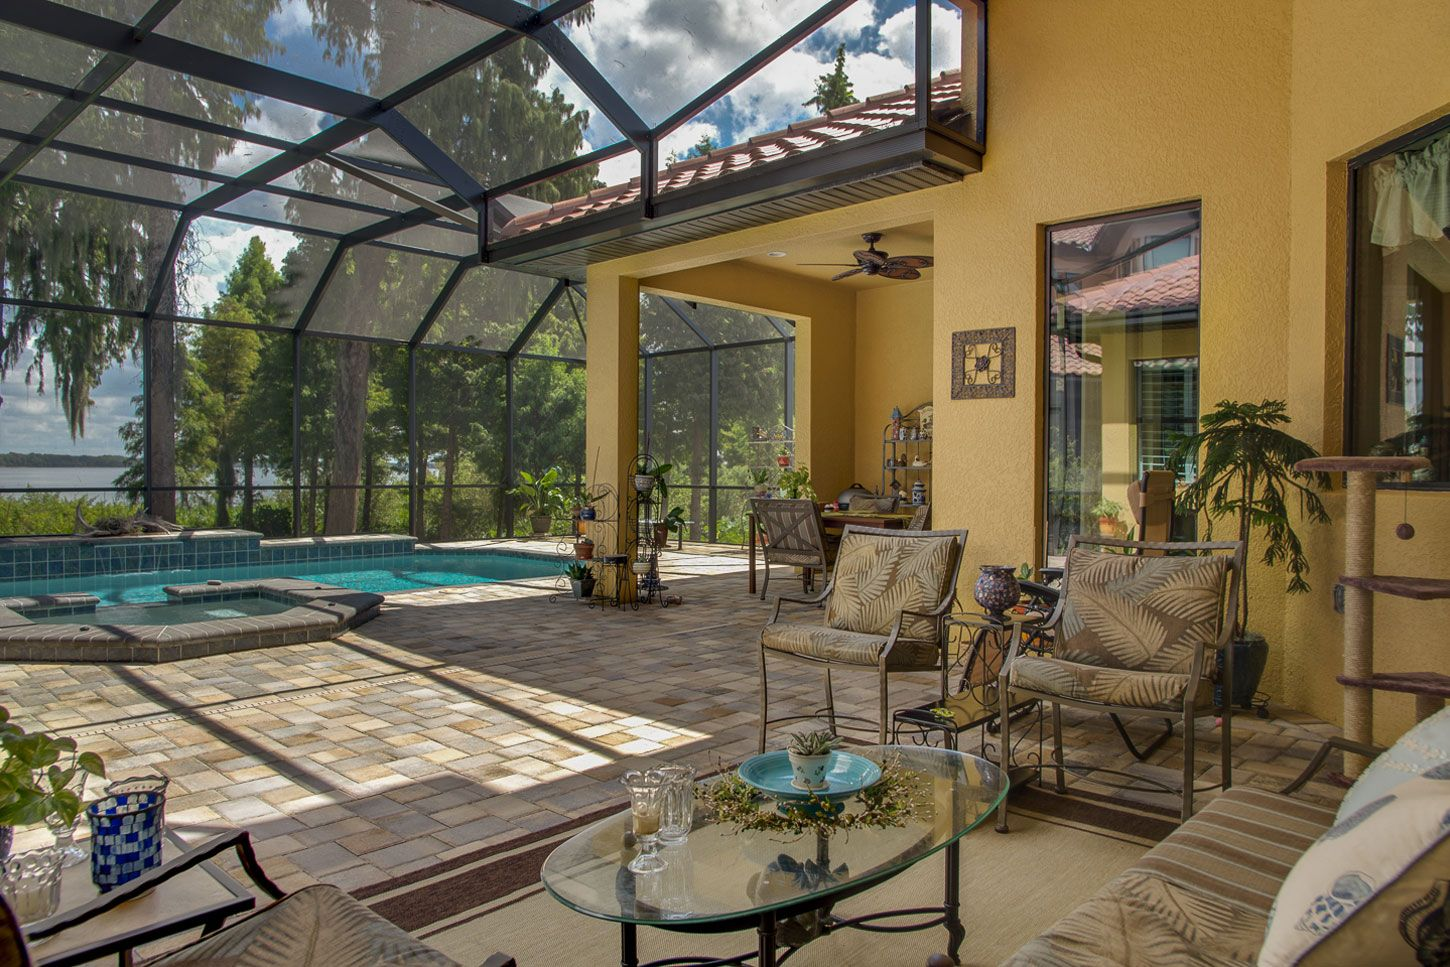 Pin by Homes by Southern Image on Pools & Outside Living ... on Southern Pools And Outdoor Living id=48245